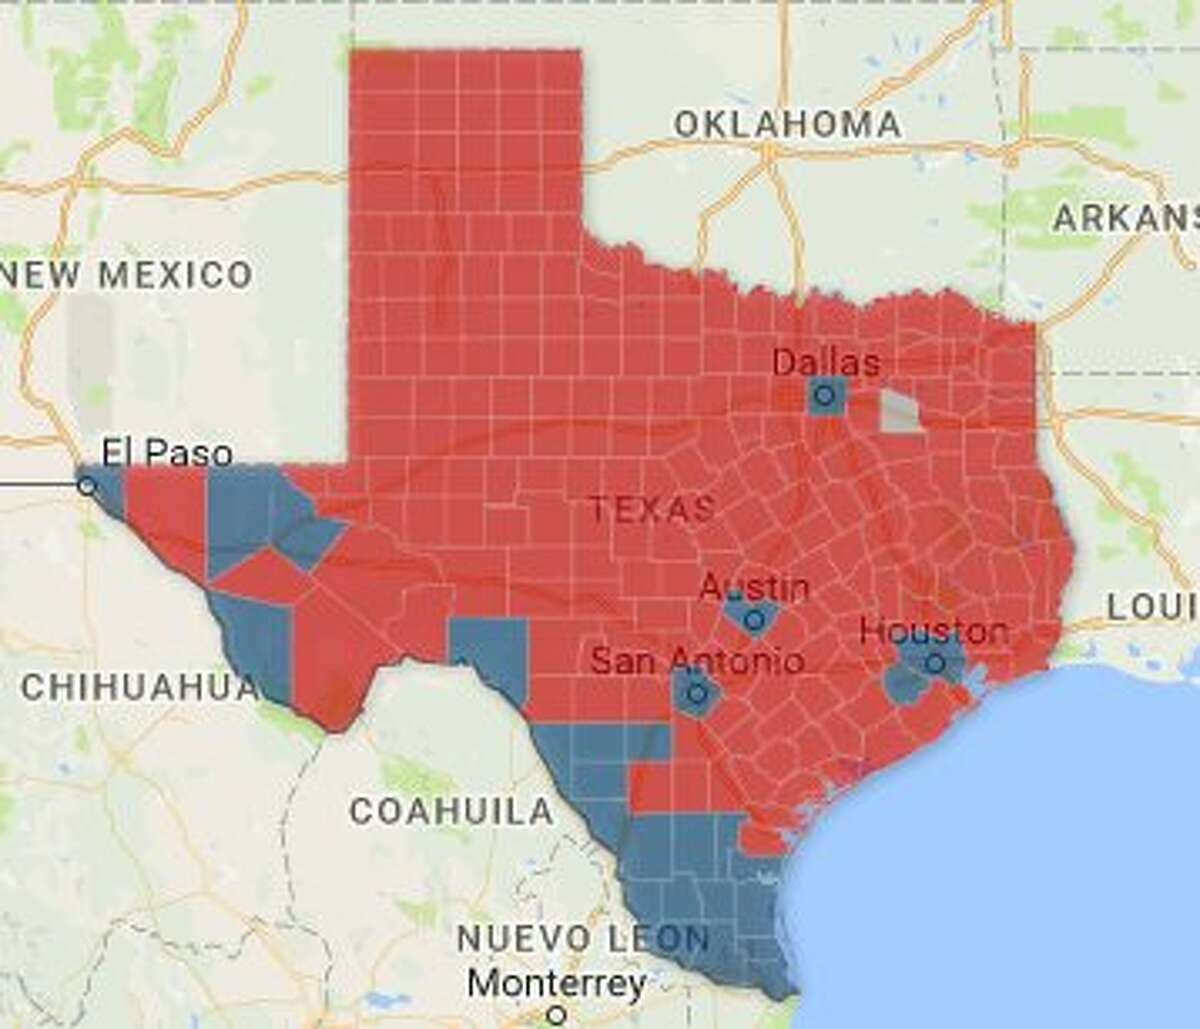 The map illustrates which counties in Texas went red (Republican) and which ones went blue (Democratic) in the 2016 presidential election. Houston's Harris County was one of the few Texas counties to go blue.